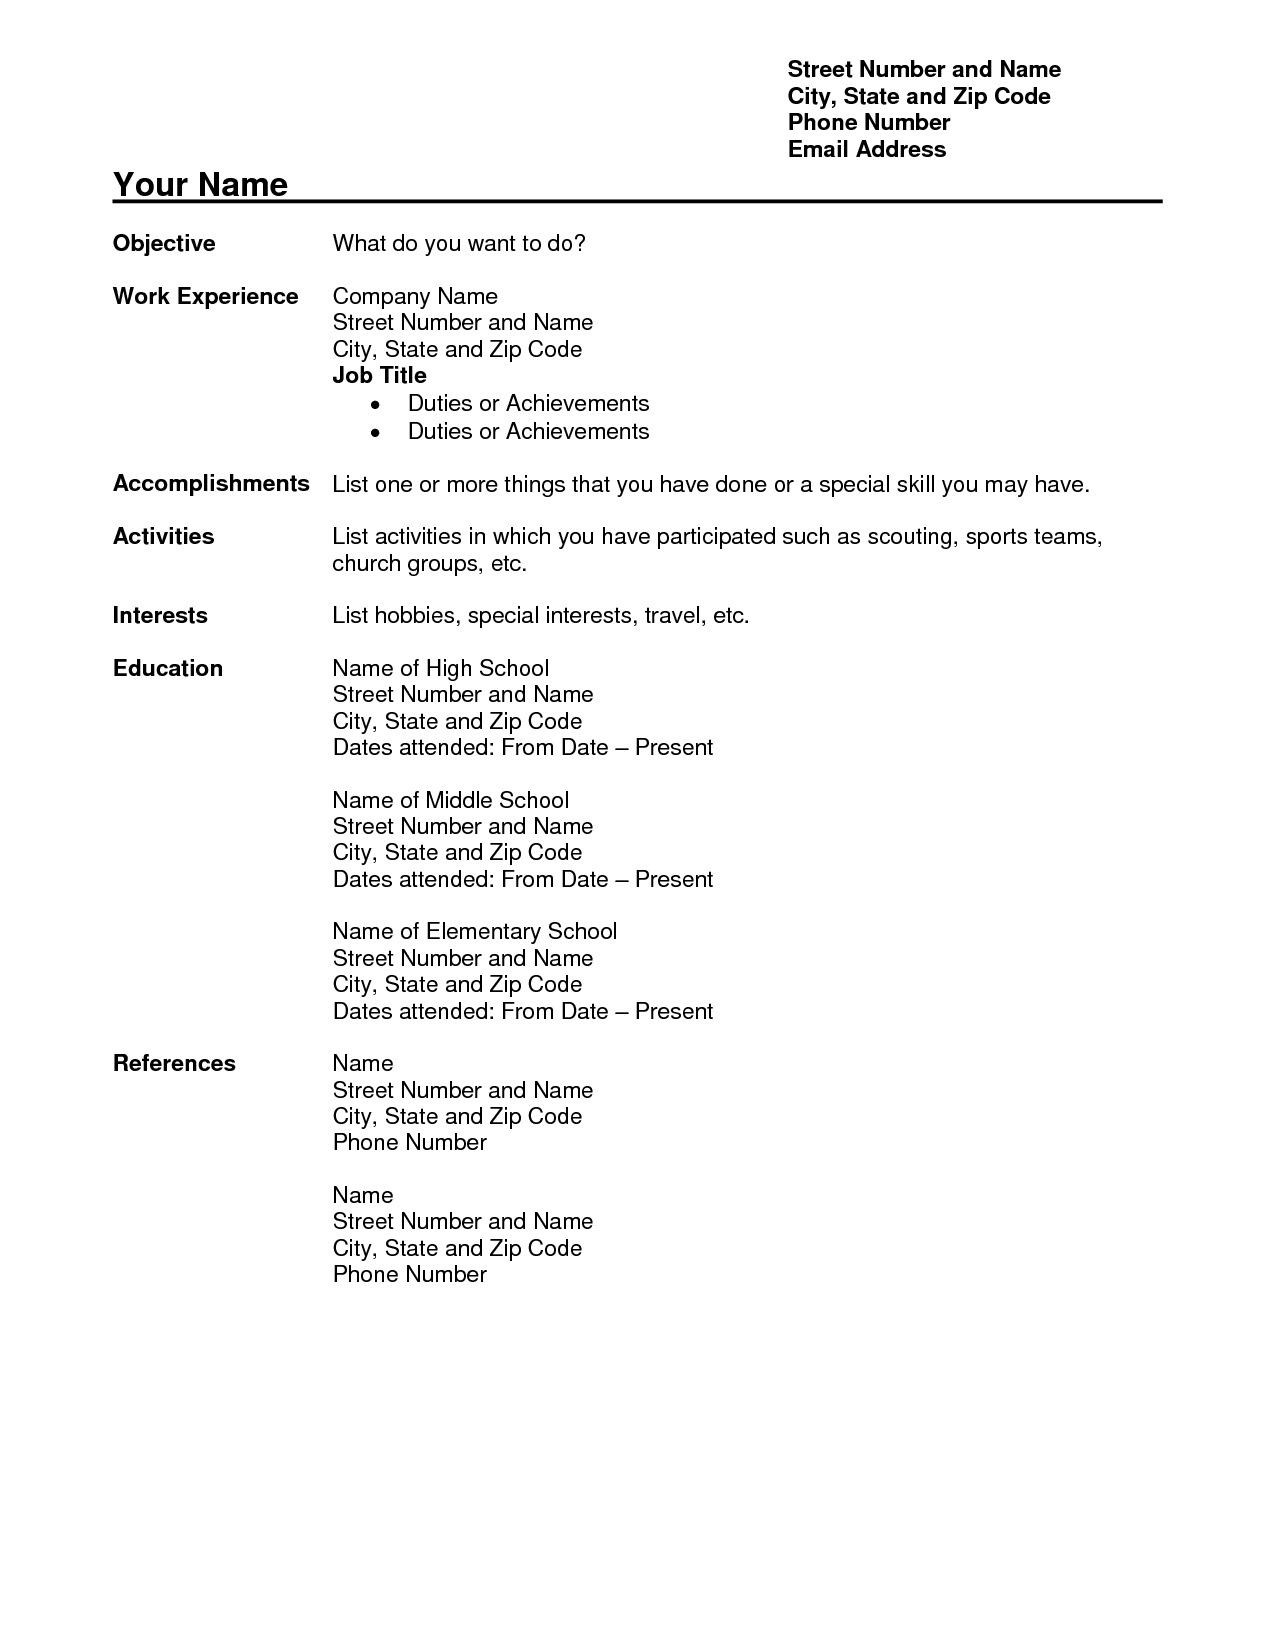 Free Teacher Resume Templates Download Free Teacher Resume Templates  Download, Free Teacher Resume Templates Microsoft  Free Resume Samples